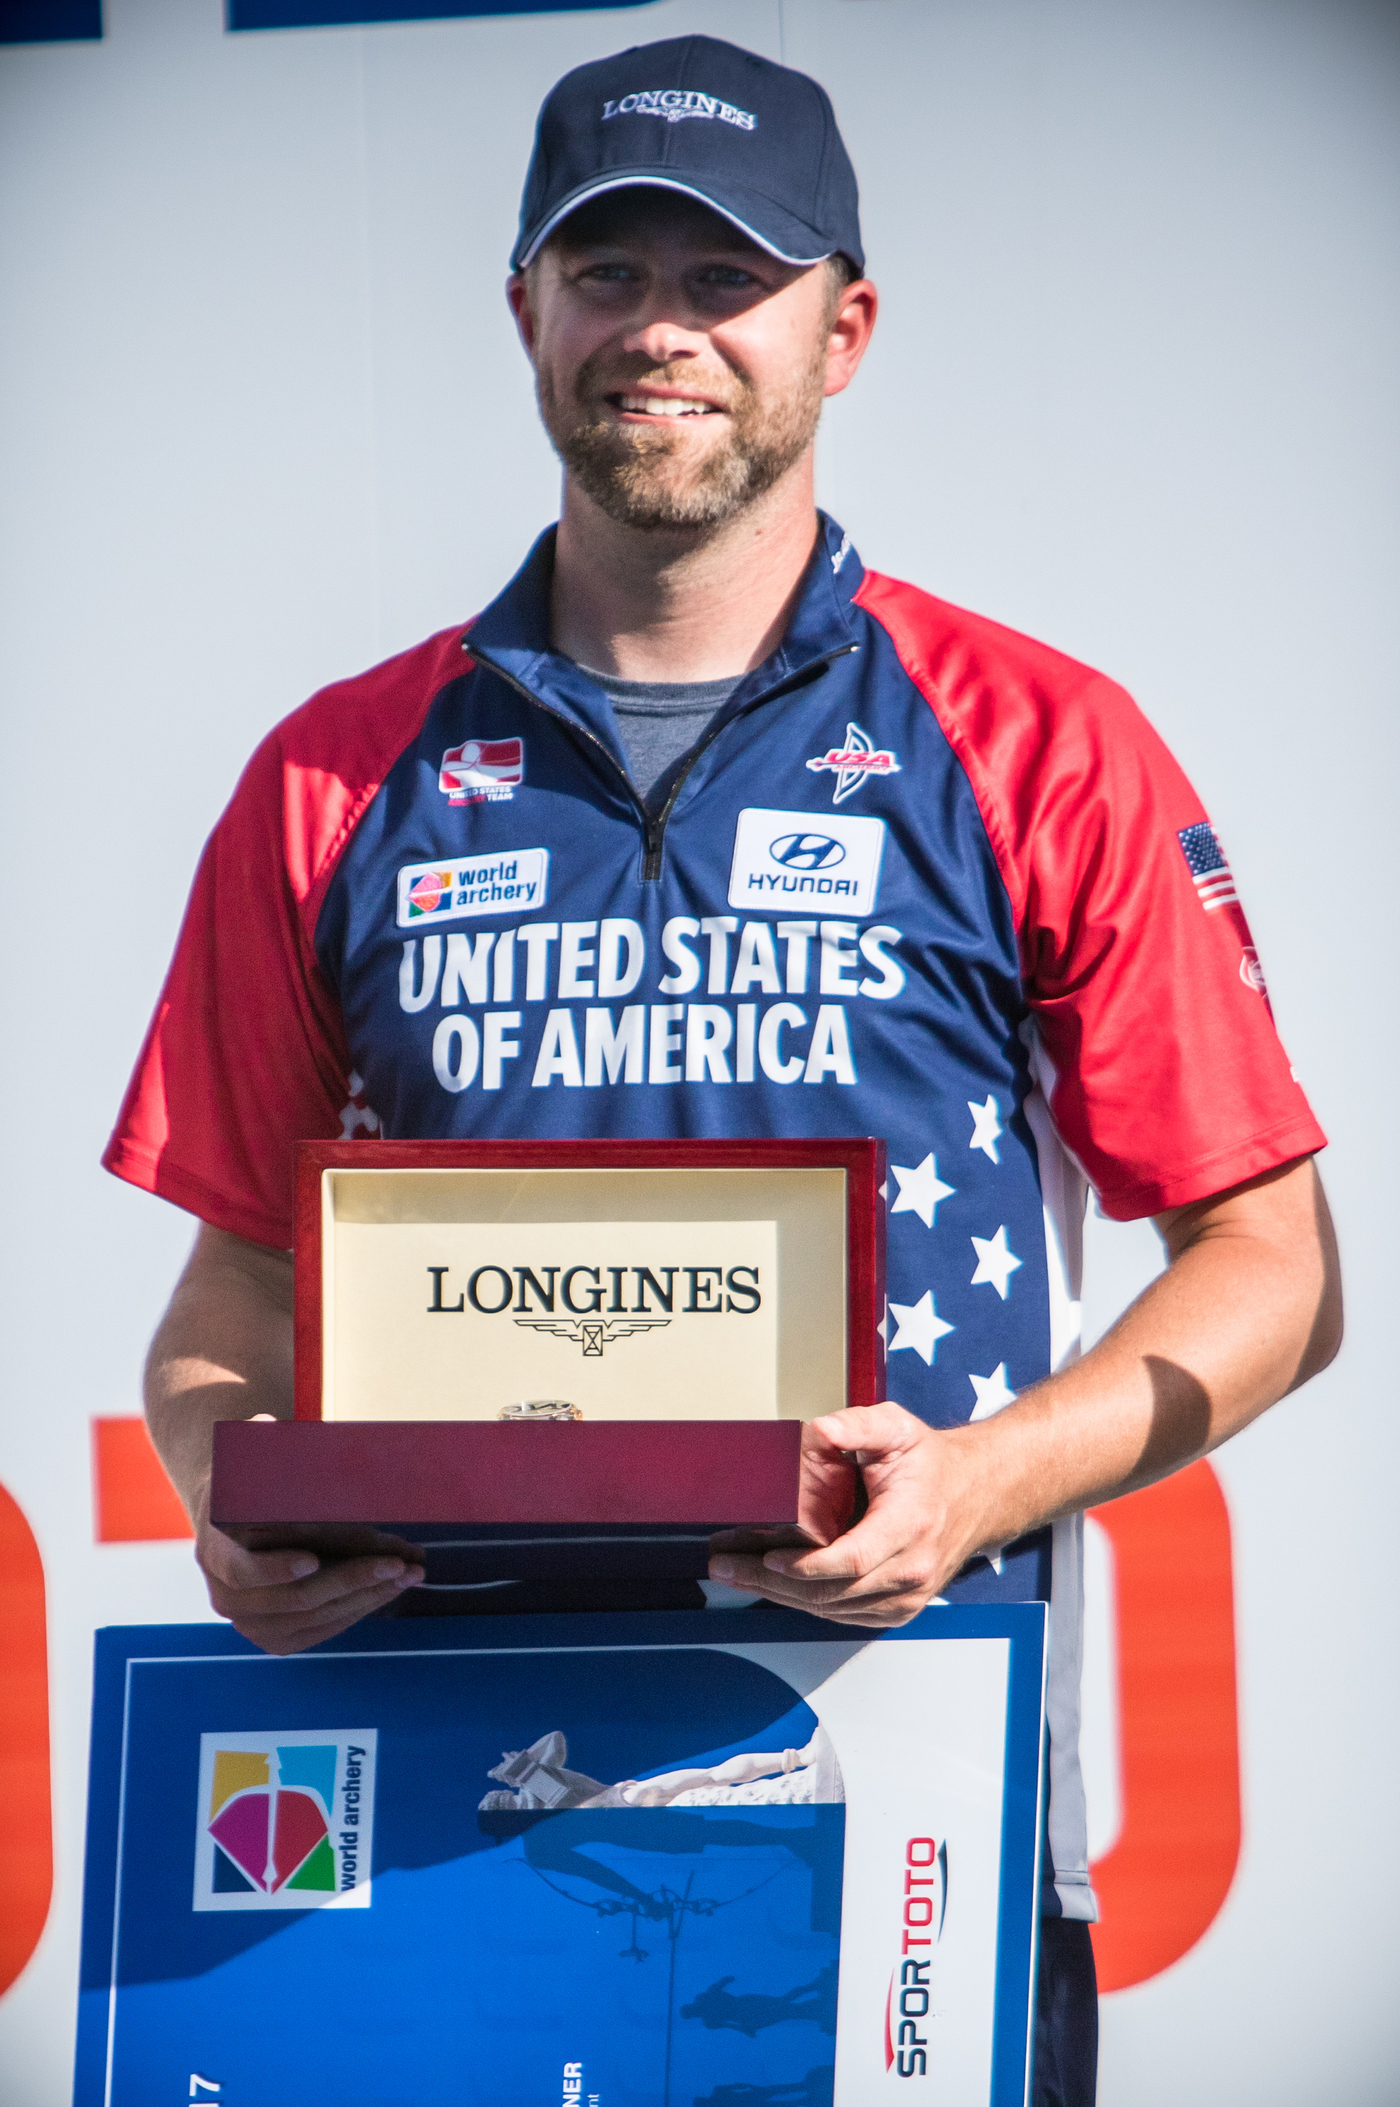 Longines Archery Event: Stephan Hansen and Sarah Sonnichsen claim the Longines Prize for Precision at the Archery World Cup Final in Rome 2